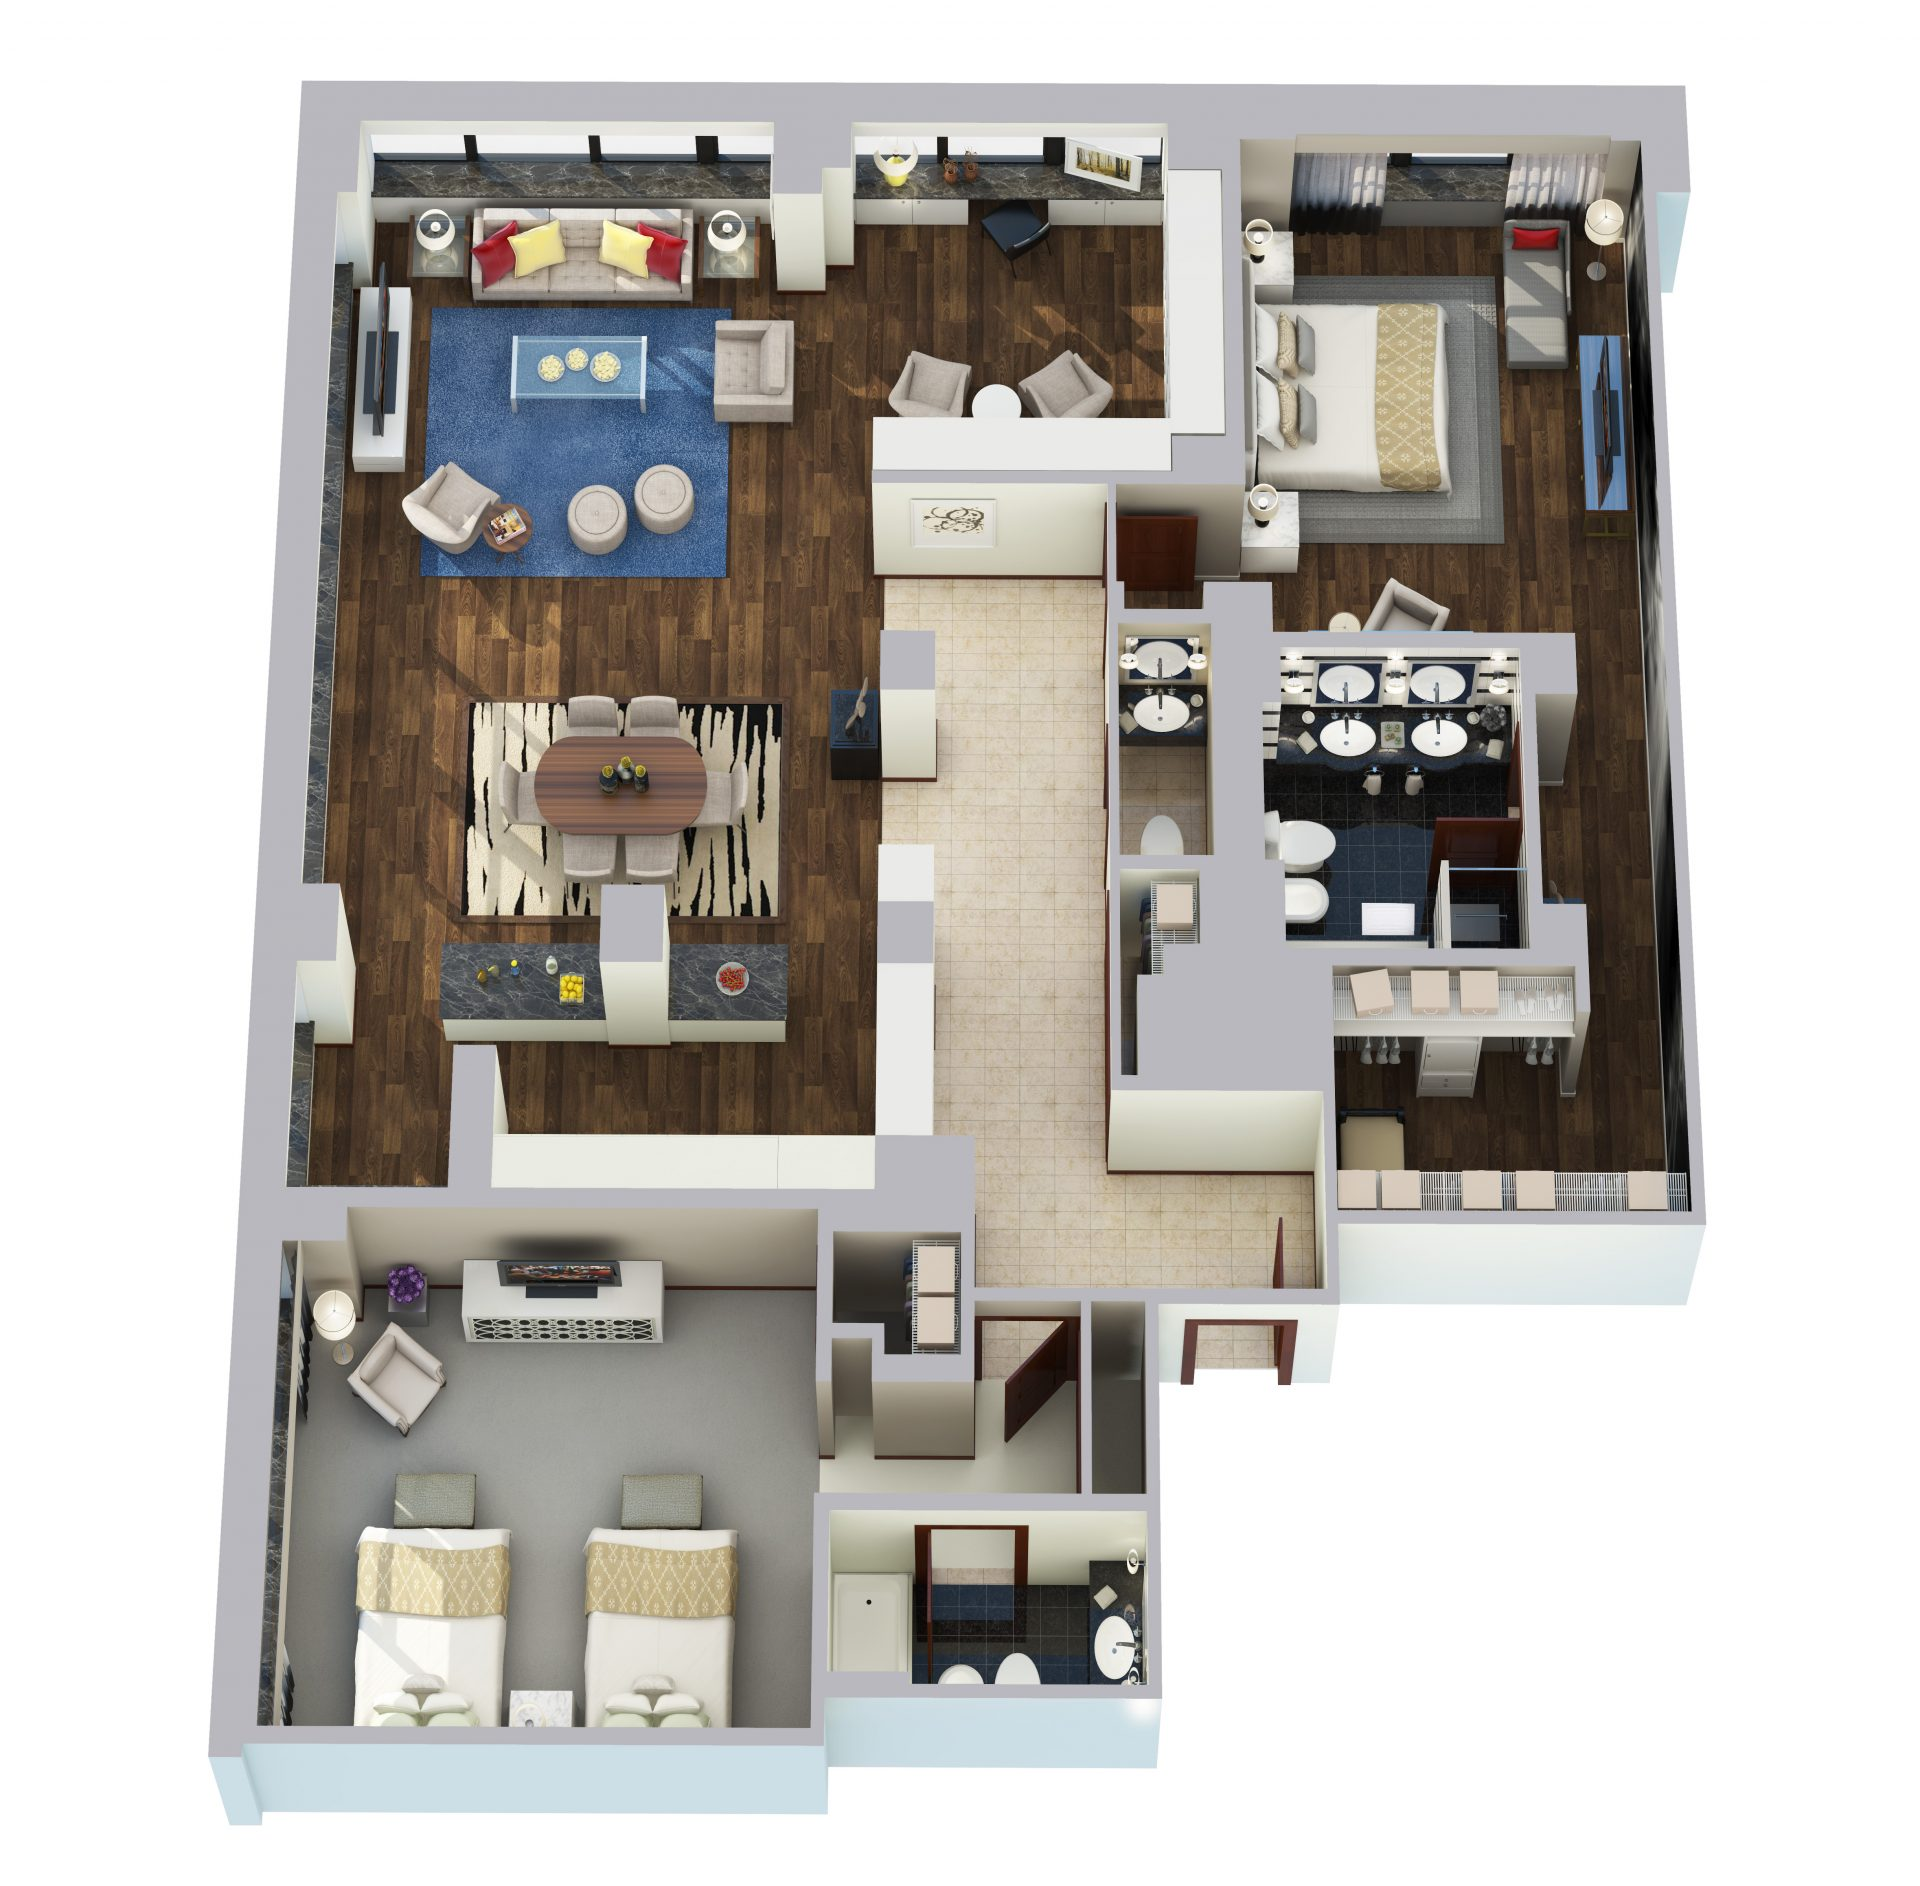 Metropolitan Suite - 2500 sq ft